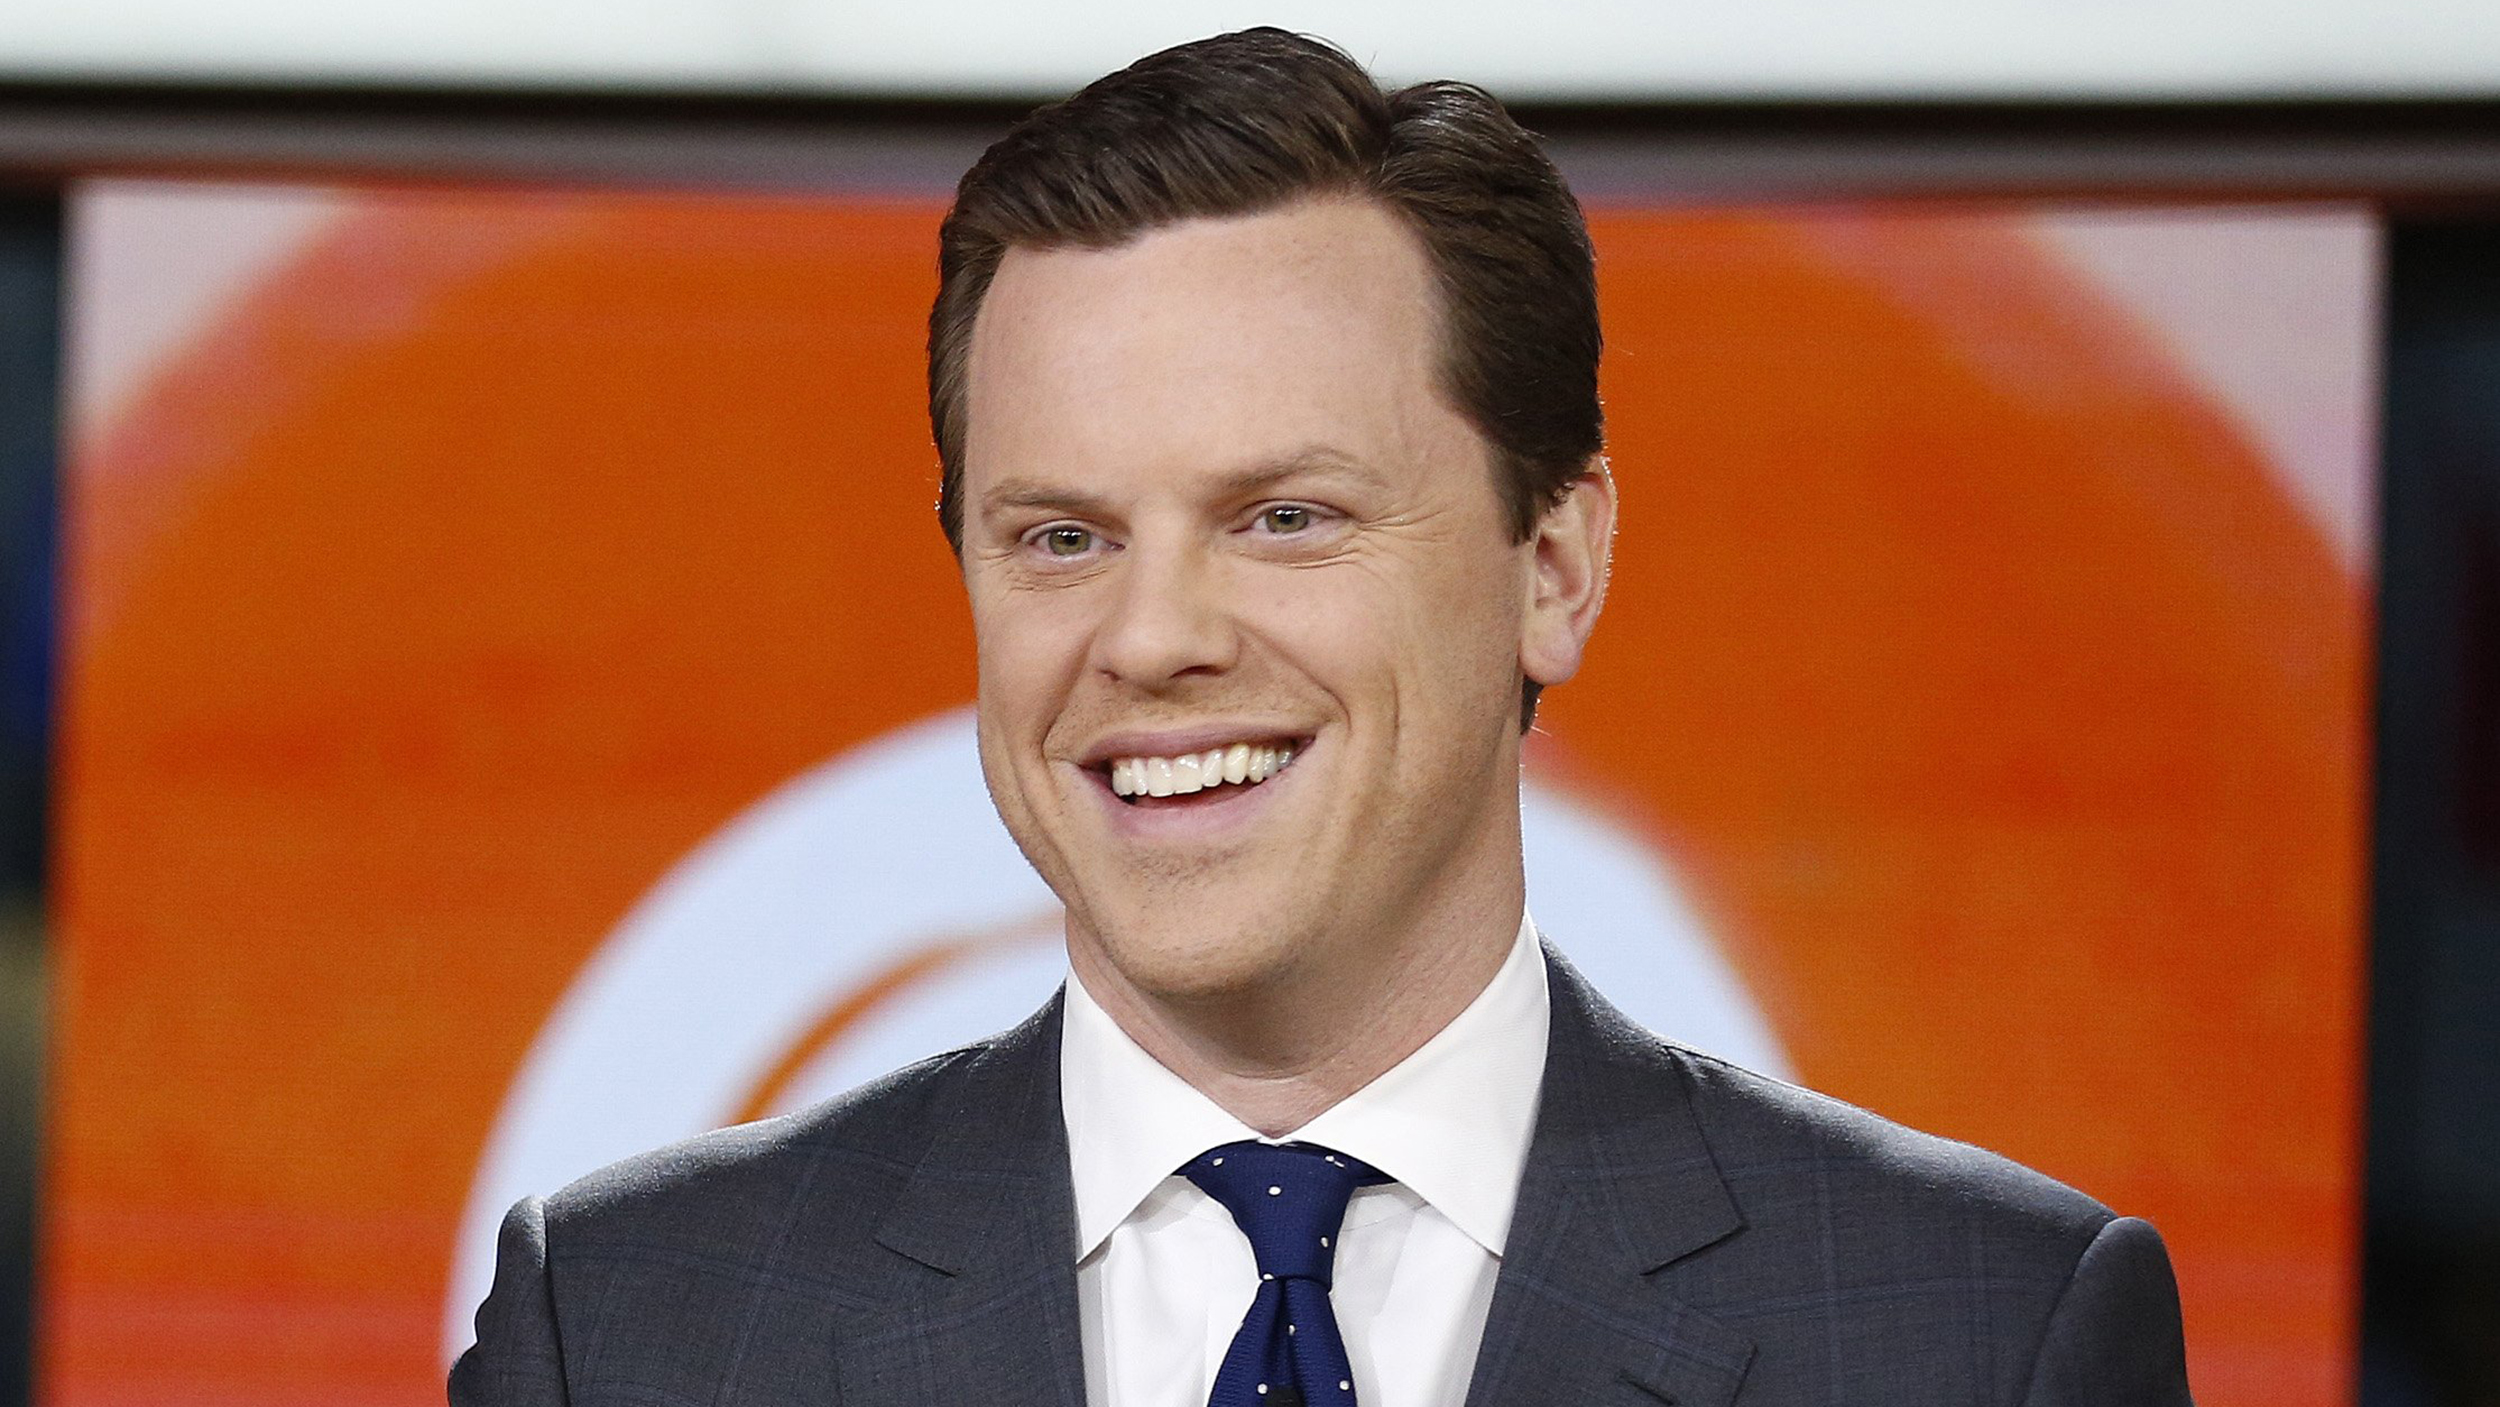 Willie Geist Ladies Relax And Loveyourselfie You Look